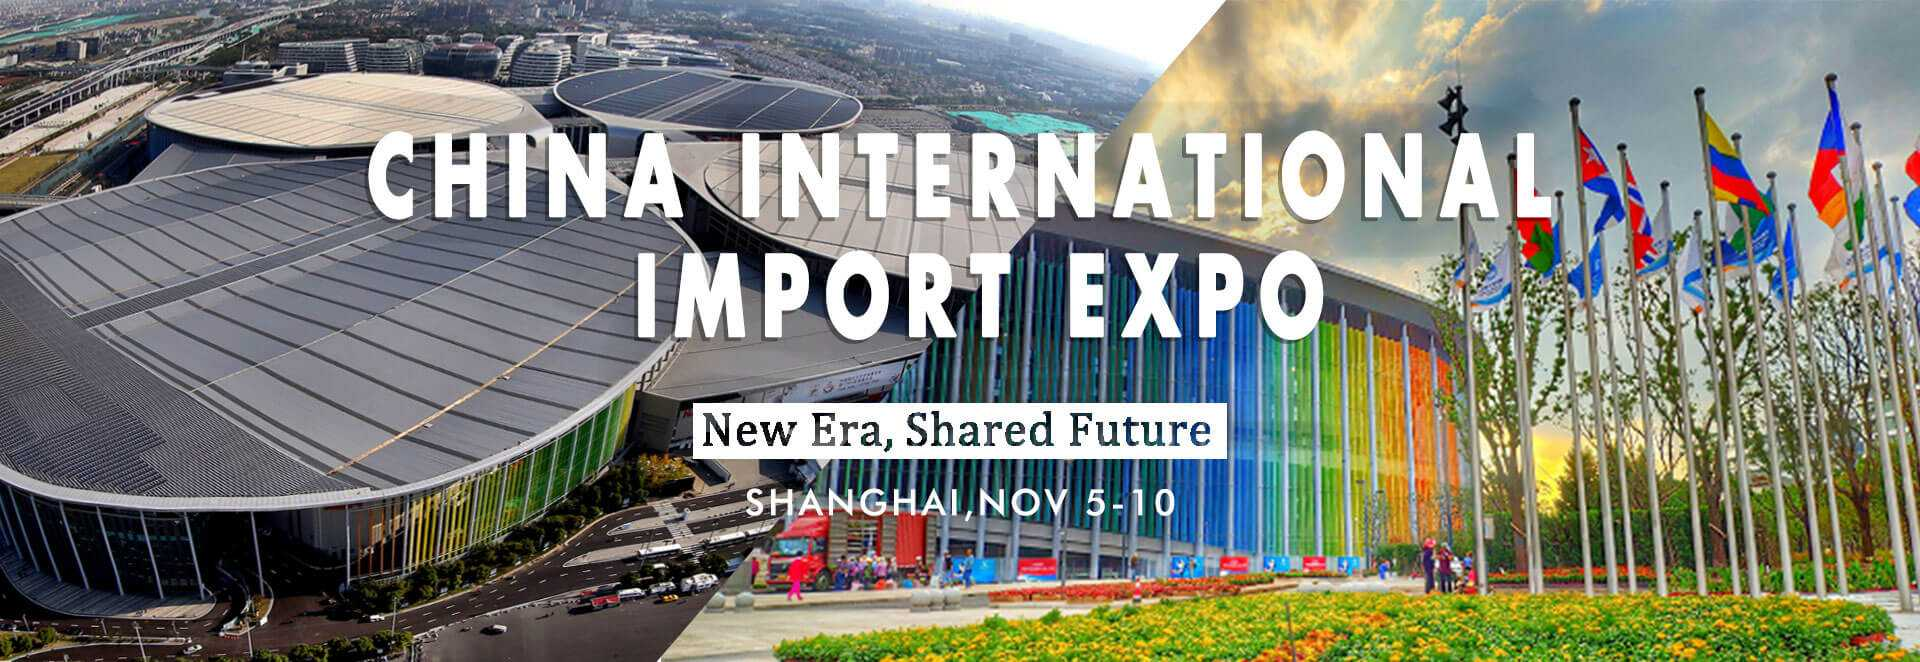 China-International-Import-Expo-CIIE-banner-